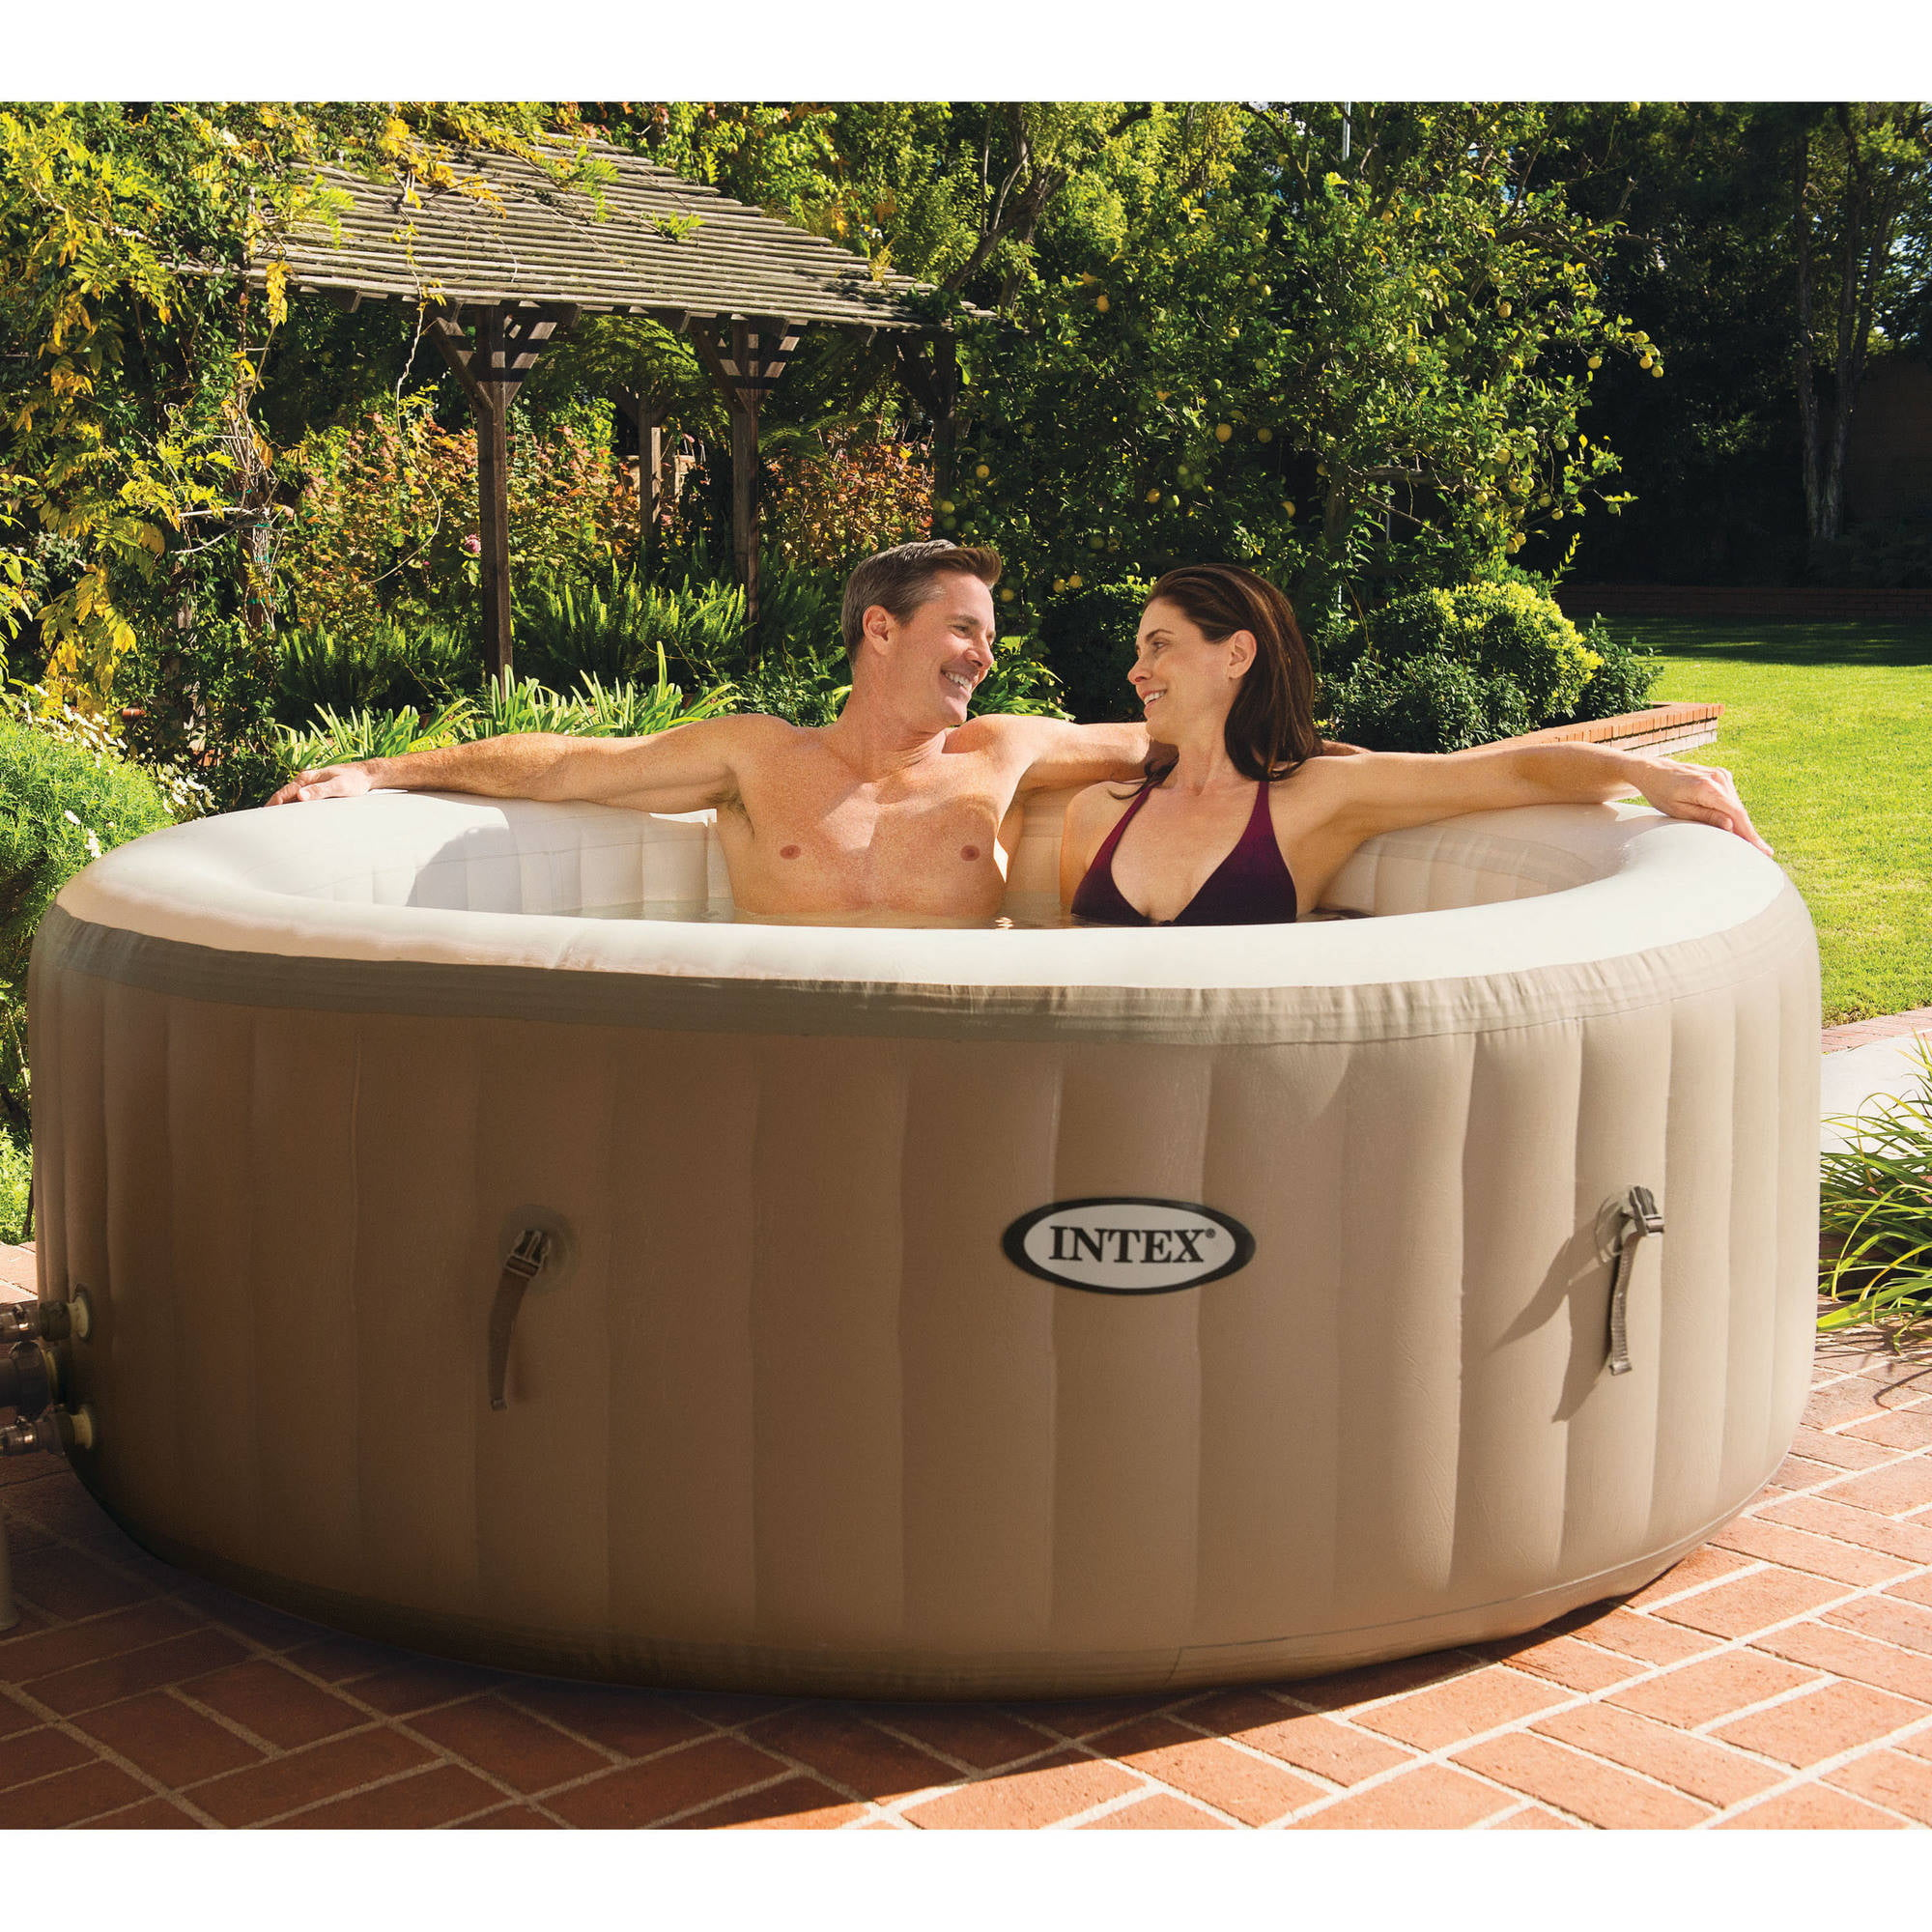 Intex 120 Bubble Jets 4-Person Round Portable Inflatable Hot Tub Spa ...